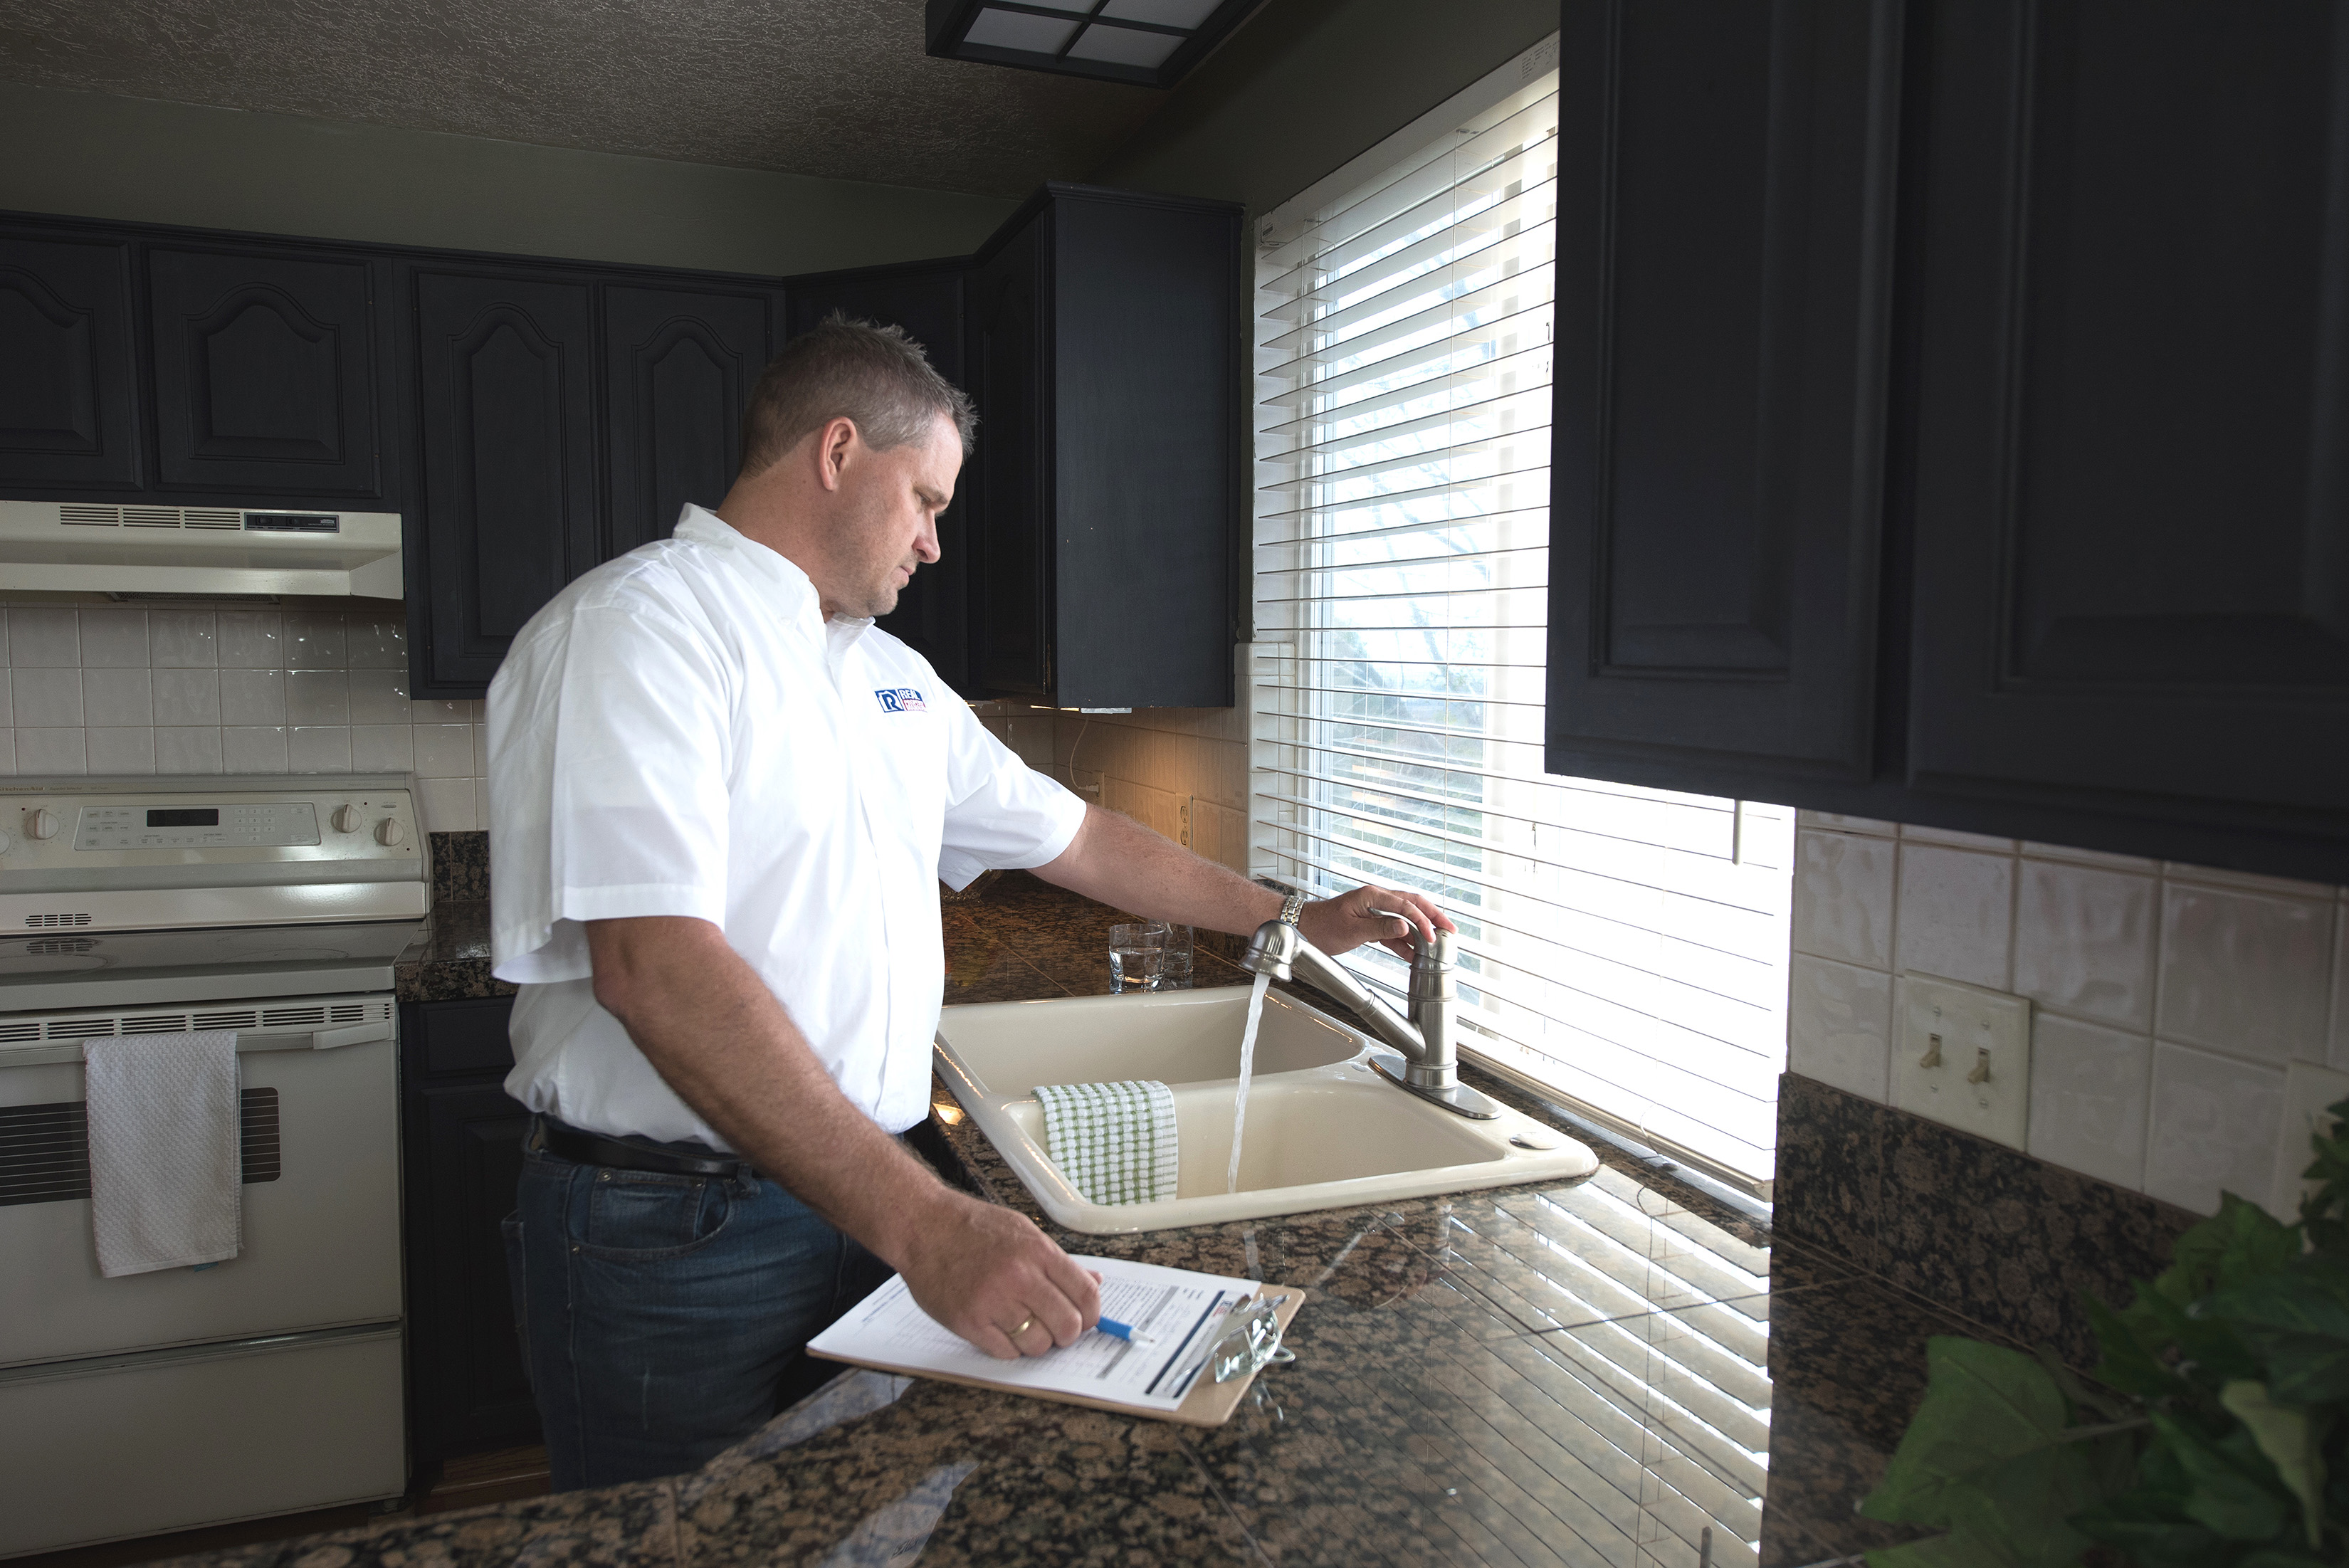 Real Property Management staff inspecting the sink